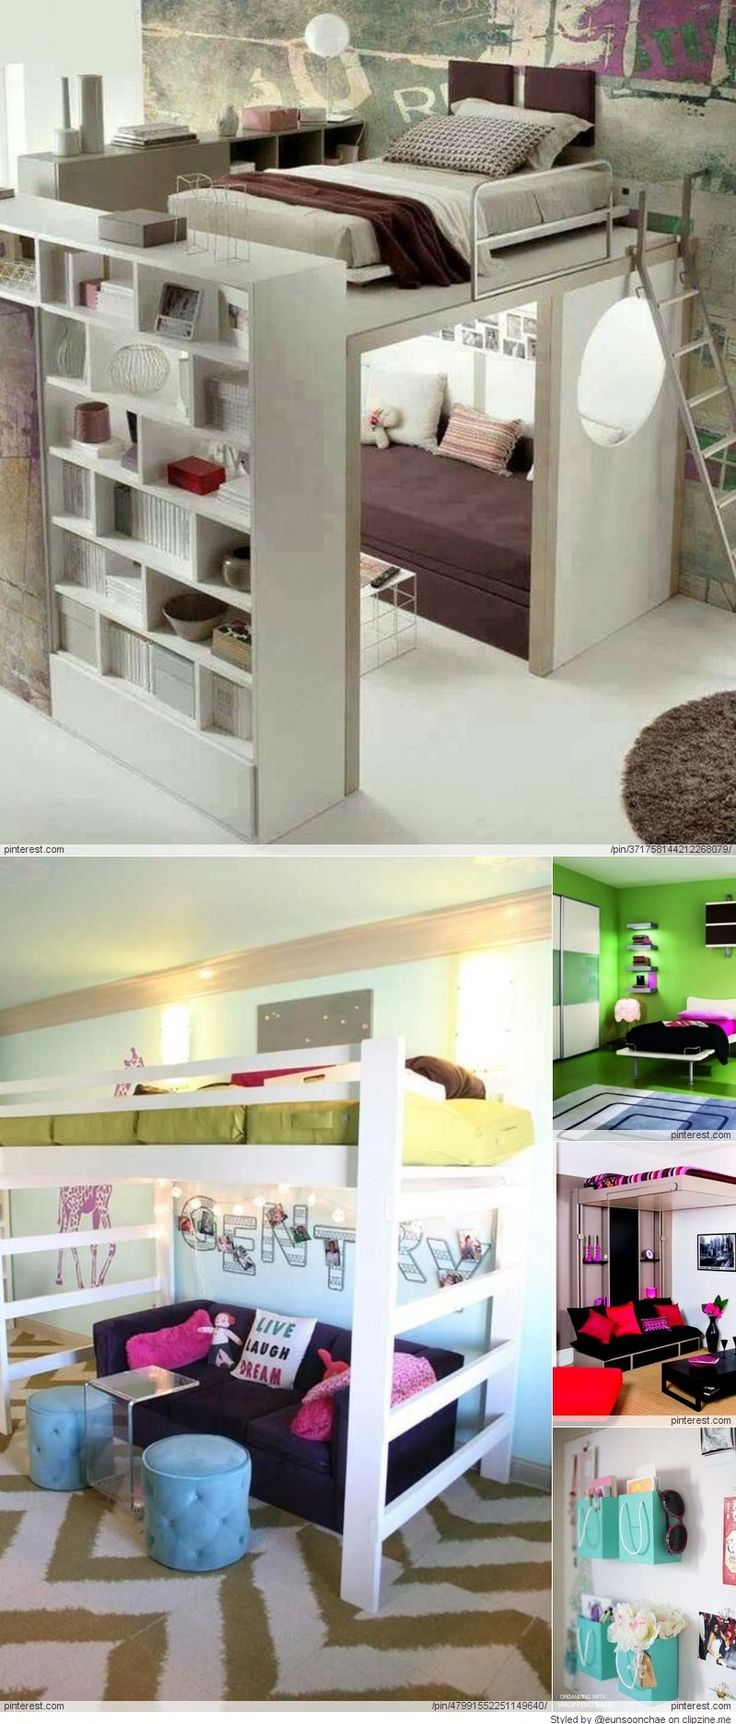 Bedroom Ideas For Teenage Girls With Small Rooms best 20+ teen shared bedroom ideas on pinterest | teen study room